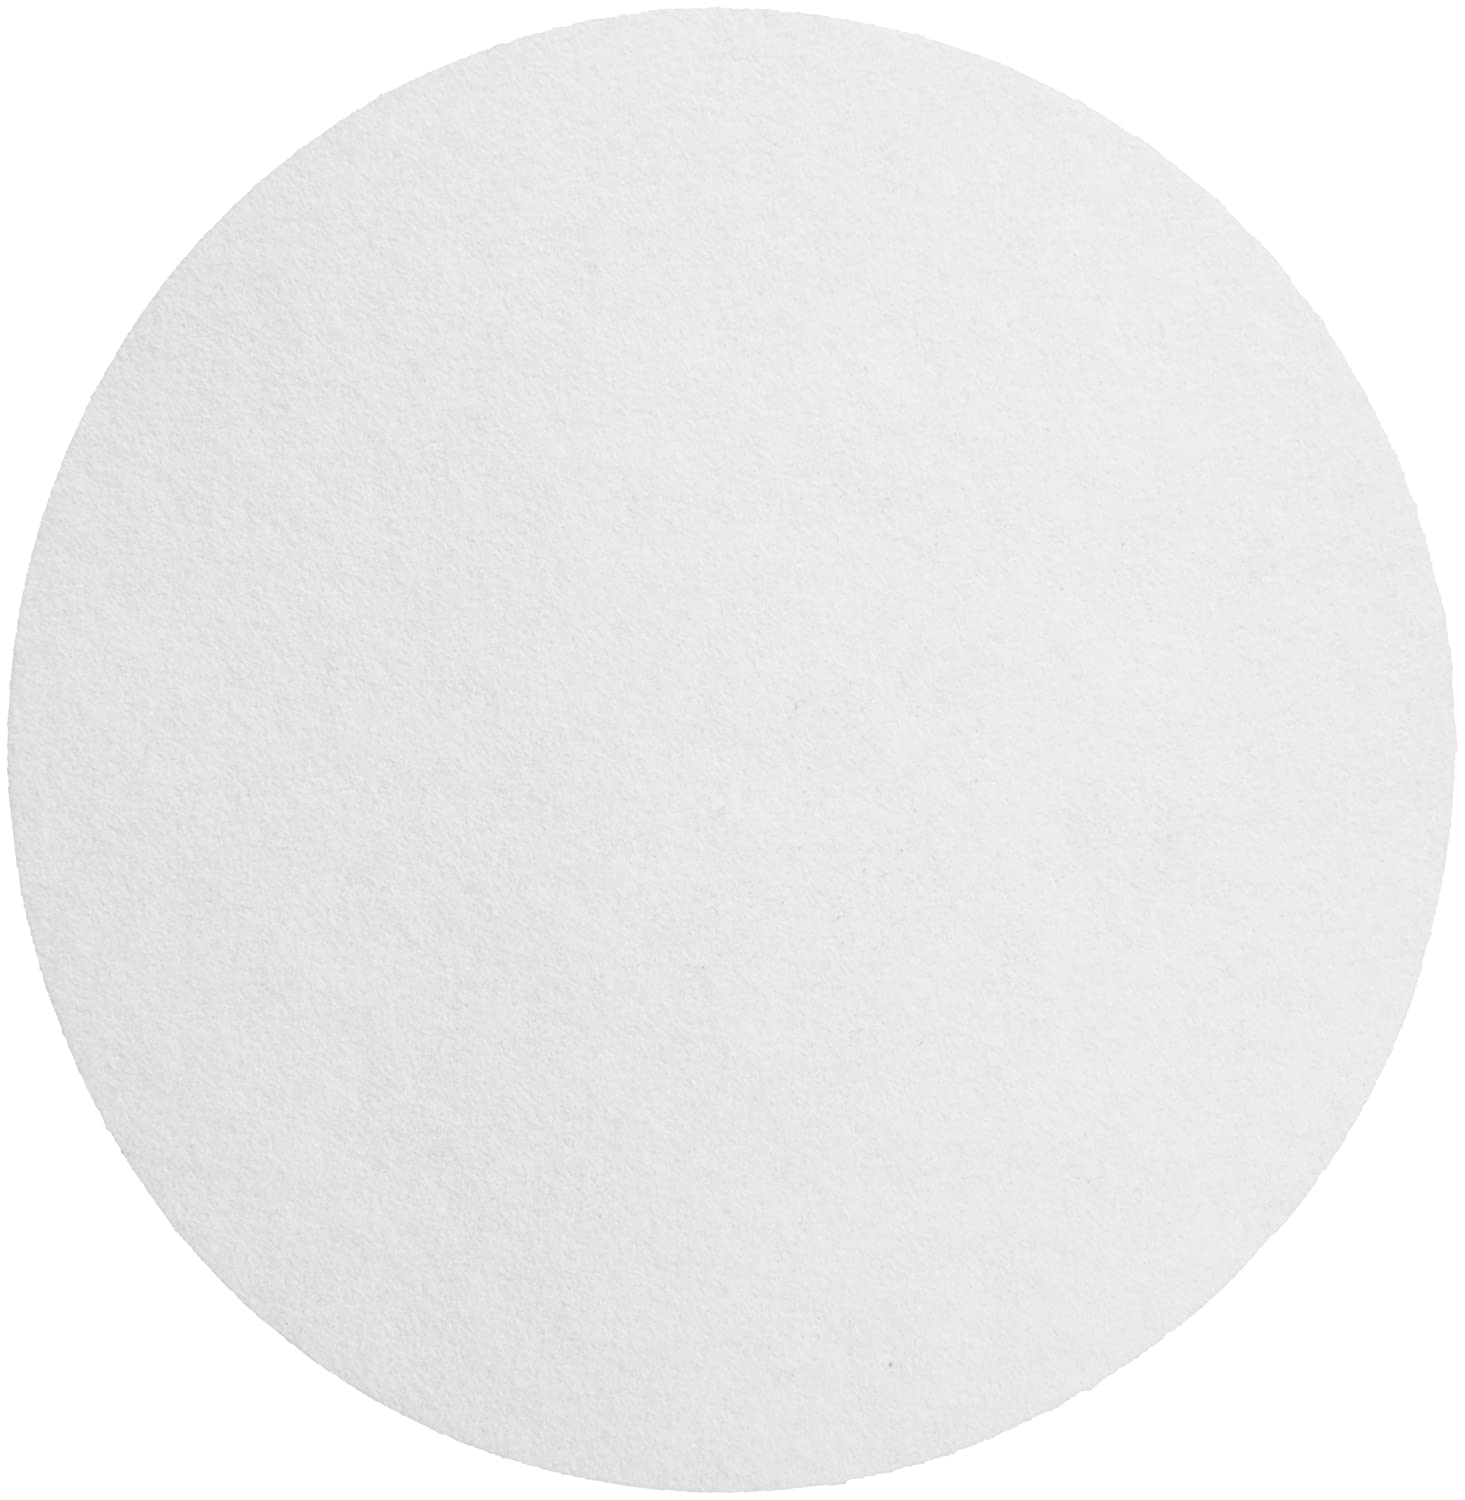 Whatman 1540055 Grade 540 Quantitative Filter Paper, Hardened Ash less, circle, 55 mm (Pack of 100) GE Healthcare F1255-3